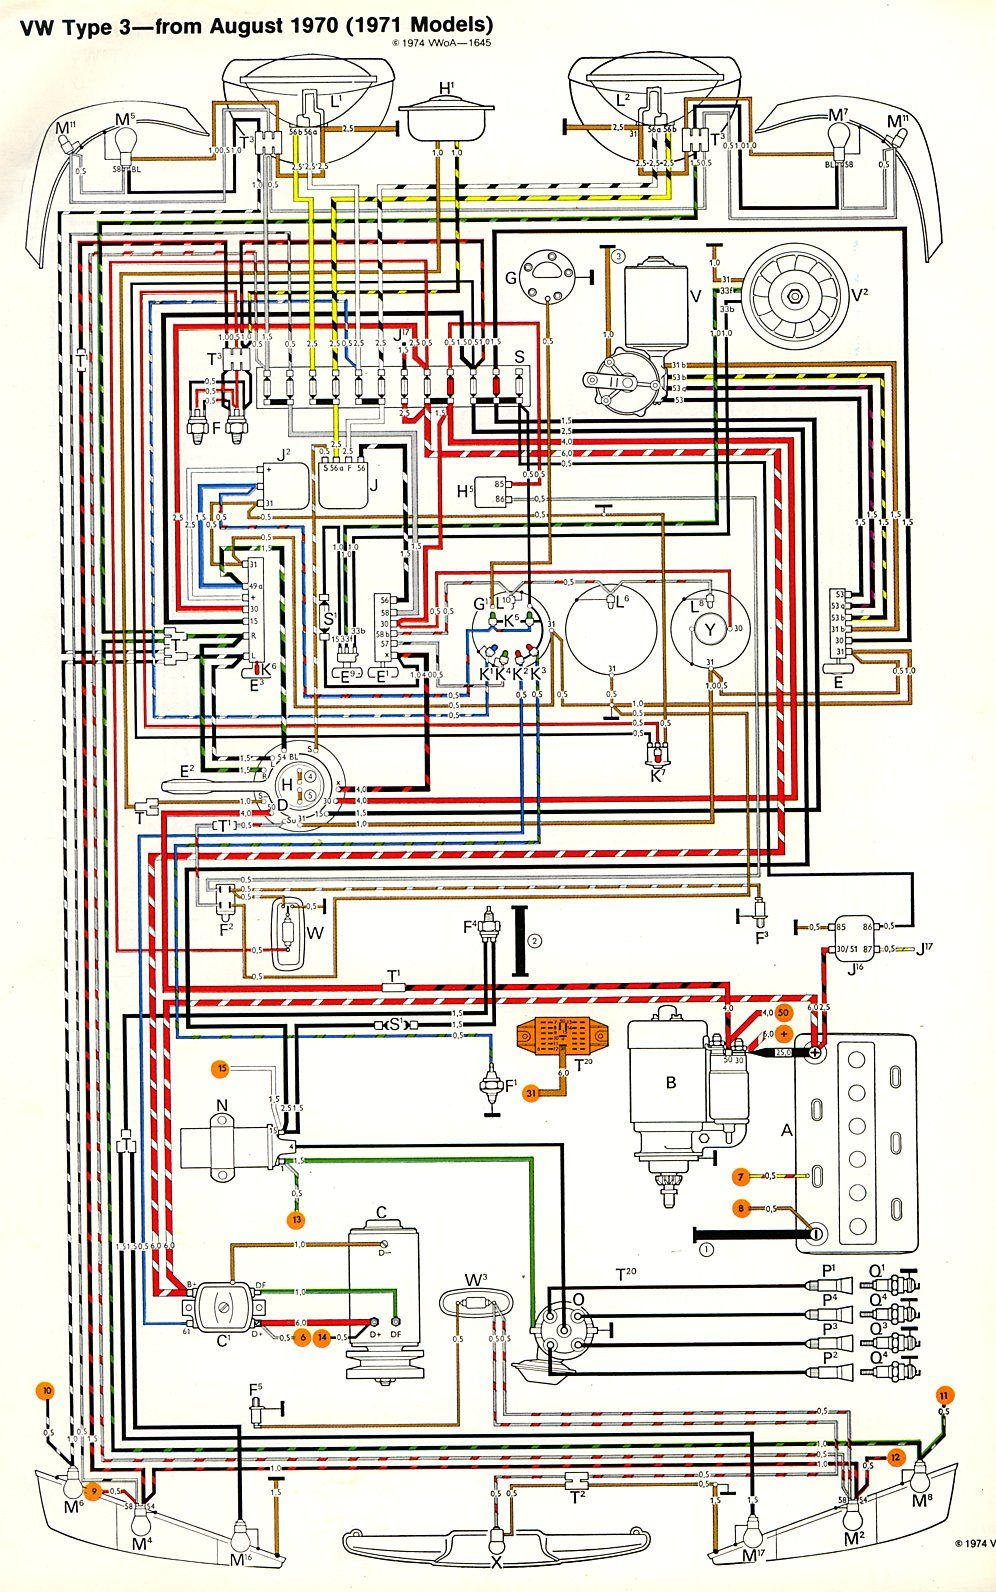 1971 Type III wiring diagram | Volkswagens | Vw beetles